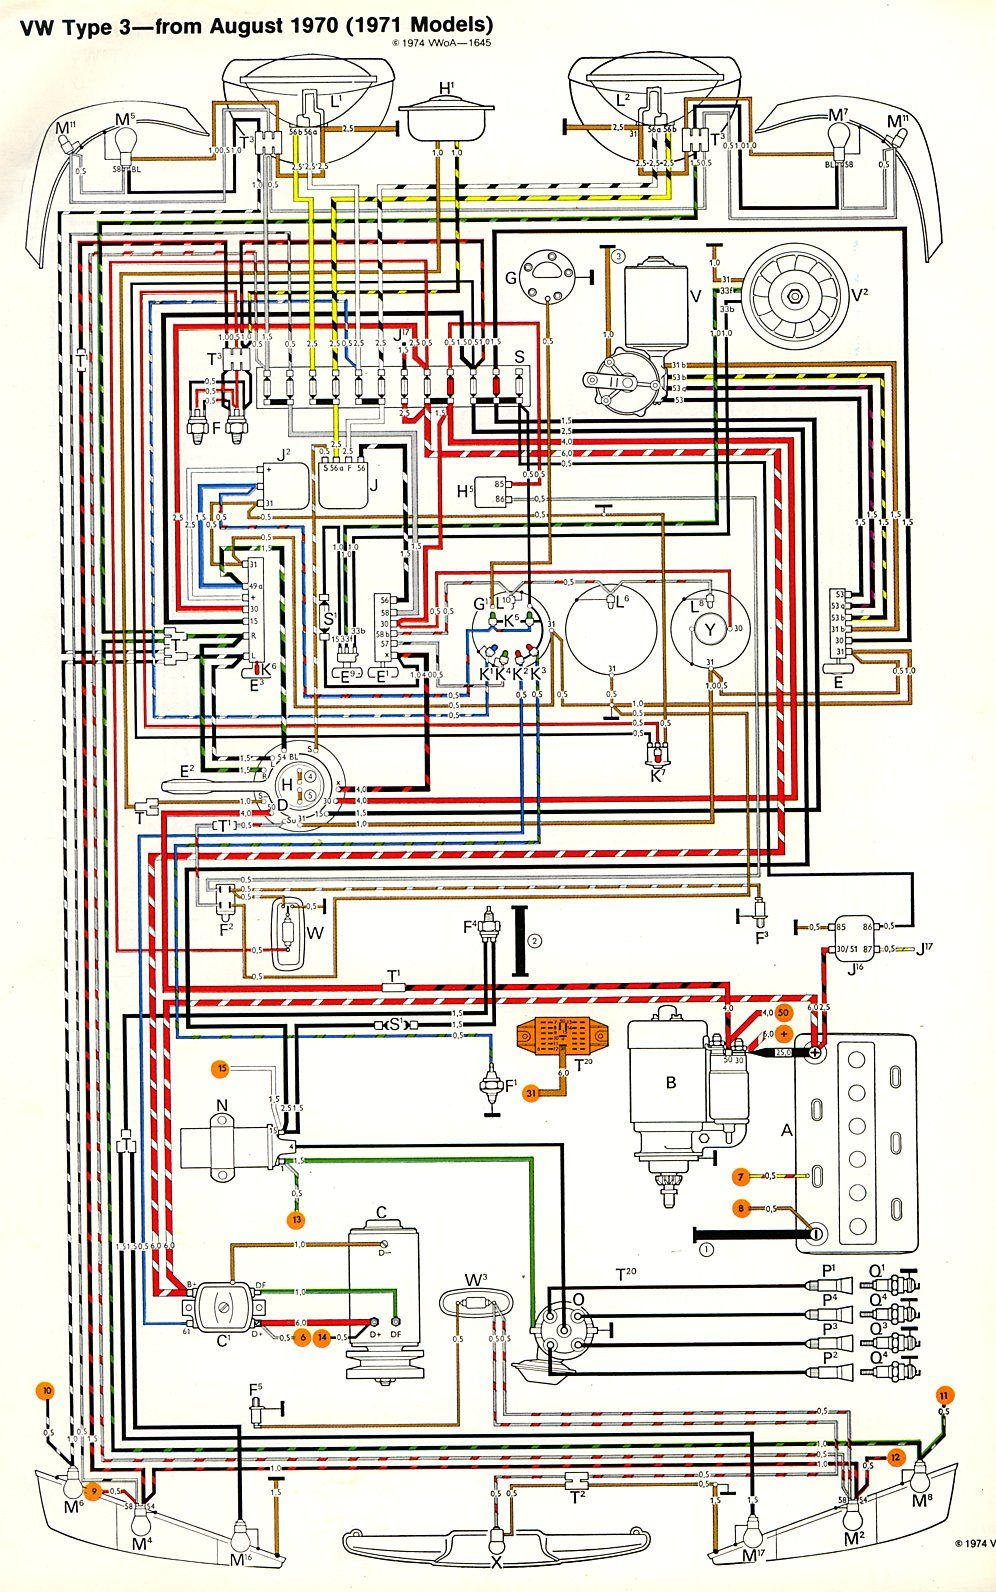 1971 Type III wiring diagram | Volkswagens | Vw beetles